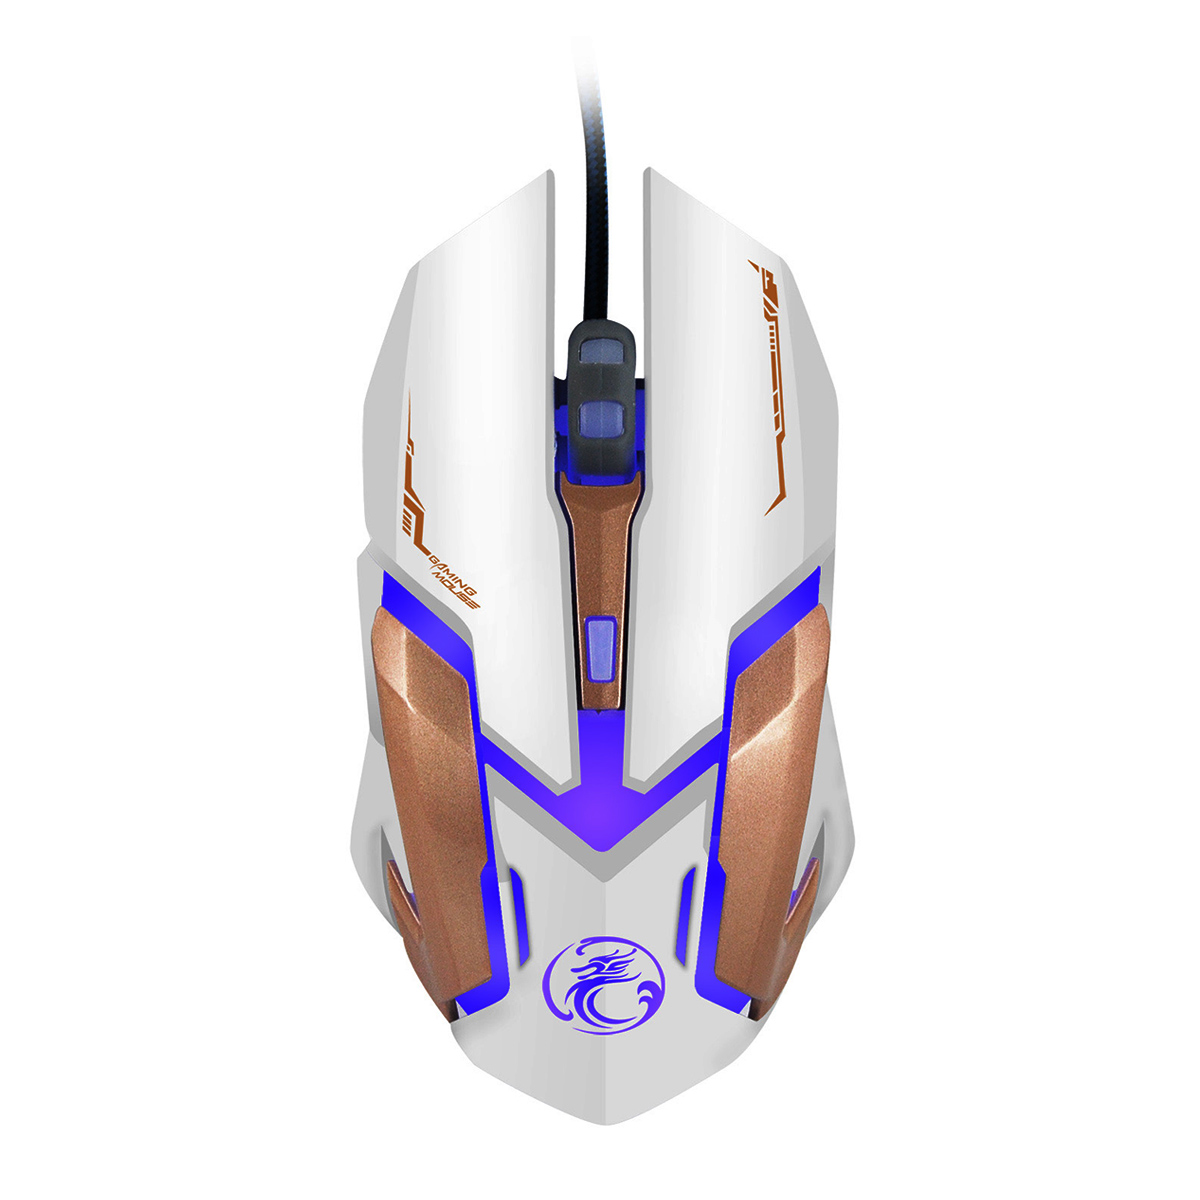 iMice Gaming Wired Mouse USB Optical Mouse 6 Buttons PC Computer Mouse Gamer Mice 4800dpi For Game Desktop Laptop(China (Mainland))